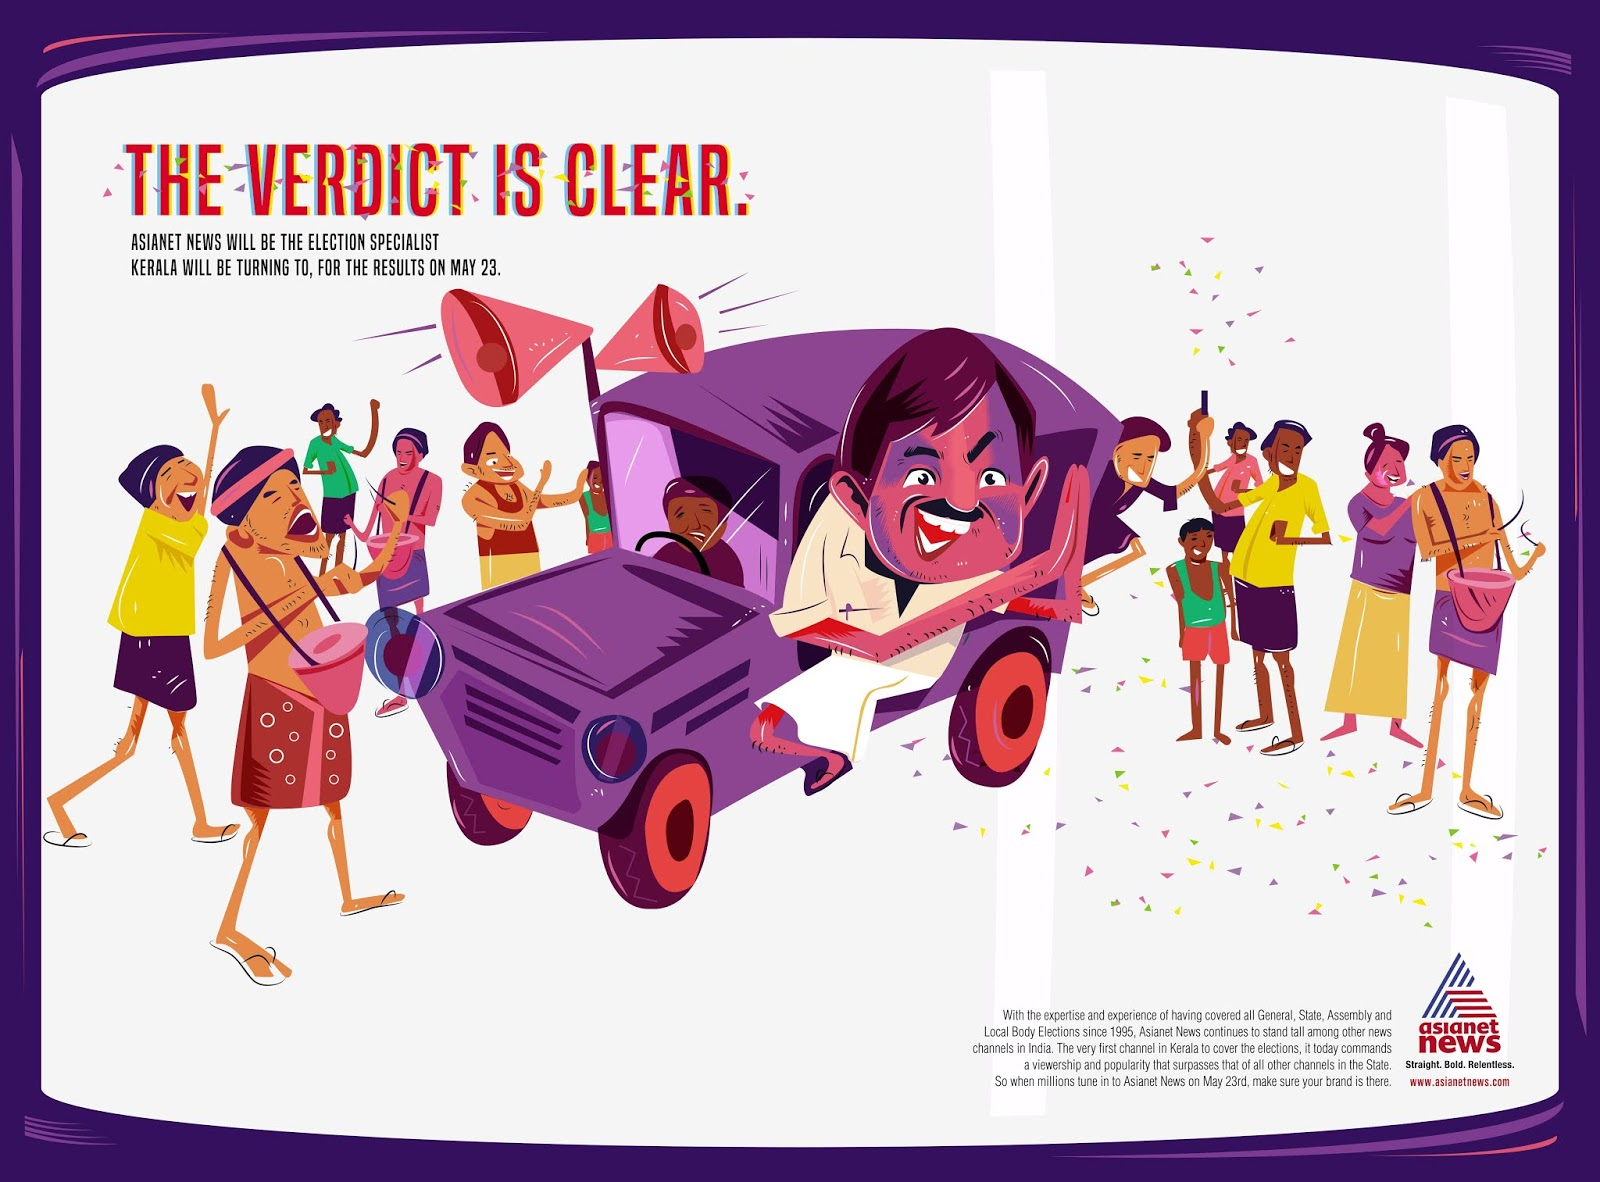 Malayala Manorama | The Verdict is Clear - Election Frenzy | Stark Communications Pvt Ltd